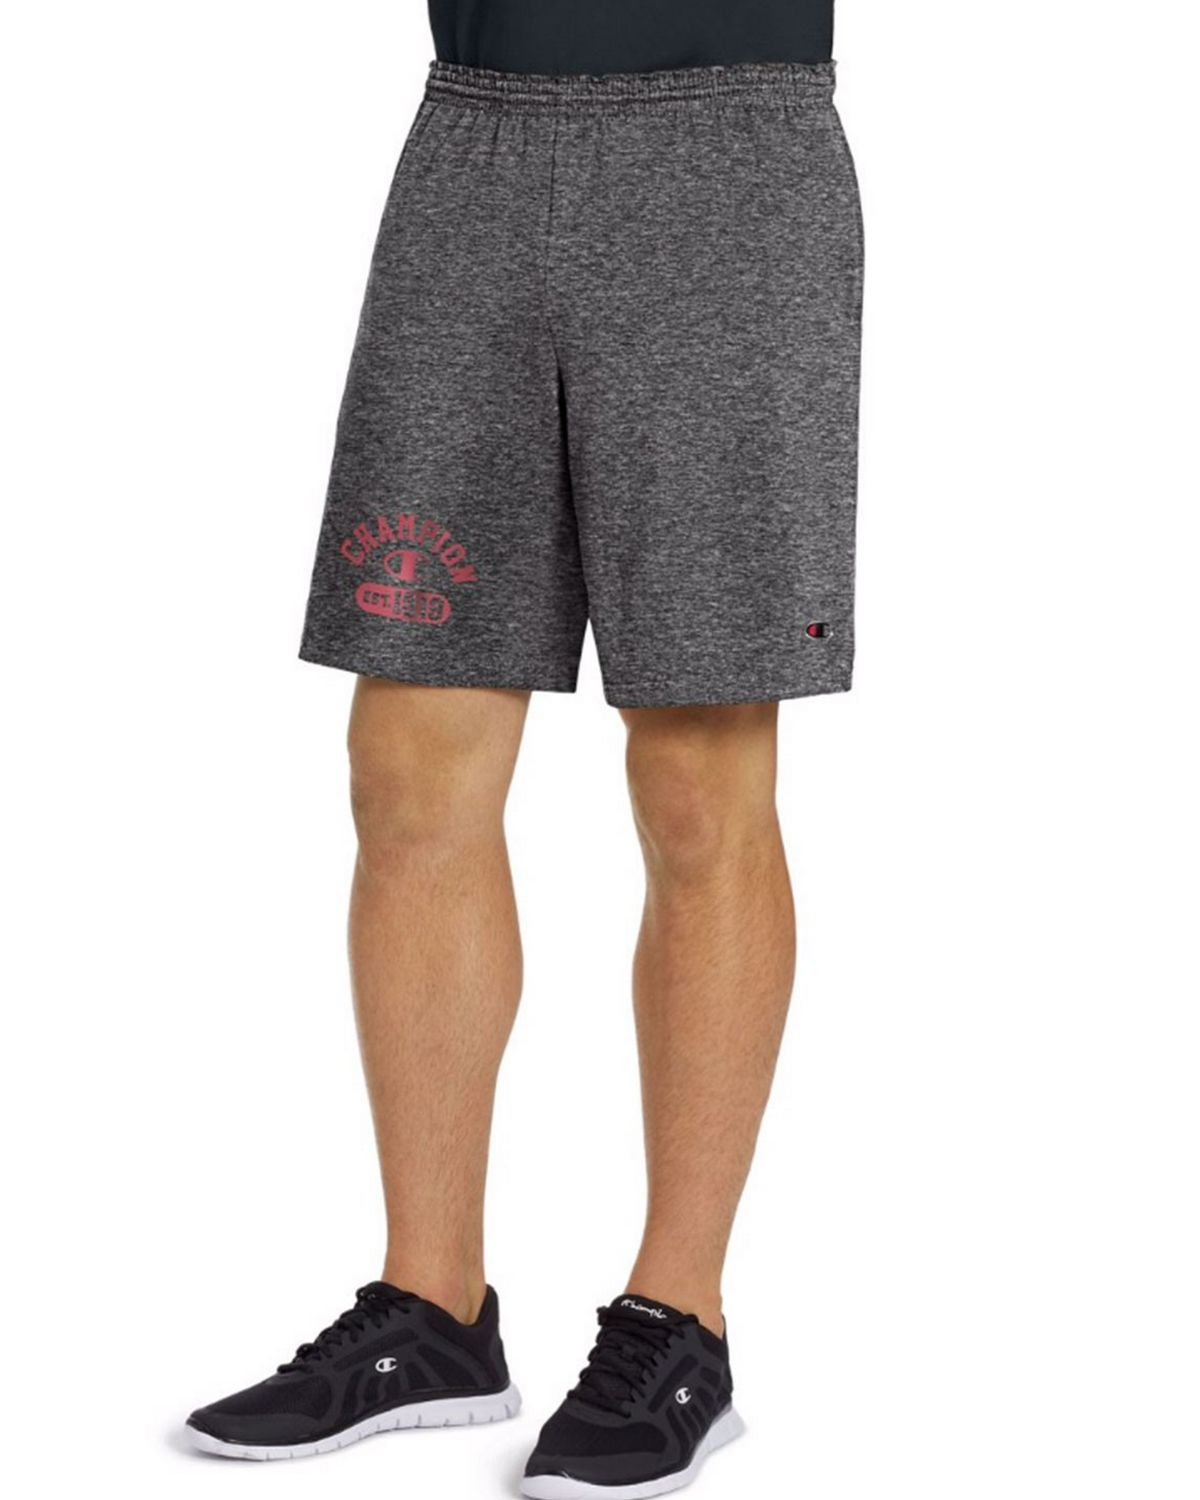 Champion 85653G Mens Graphic Shorts - Granite Heather - S 85653G